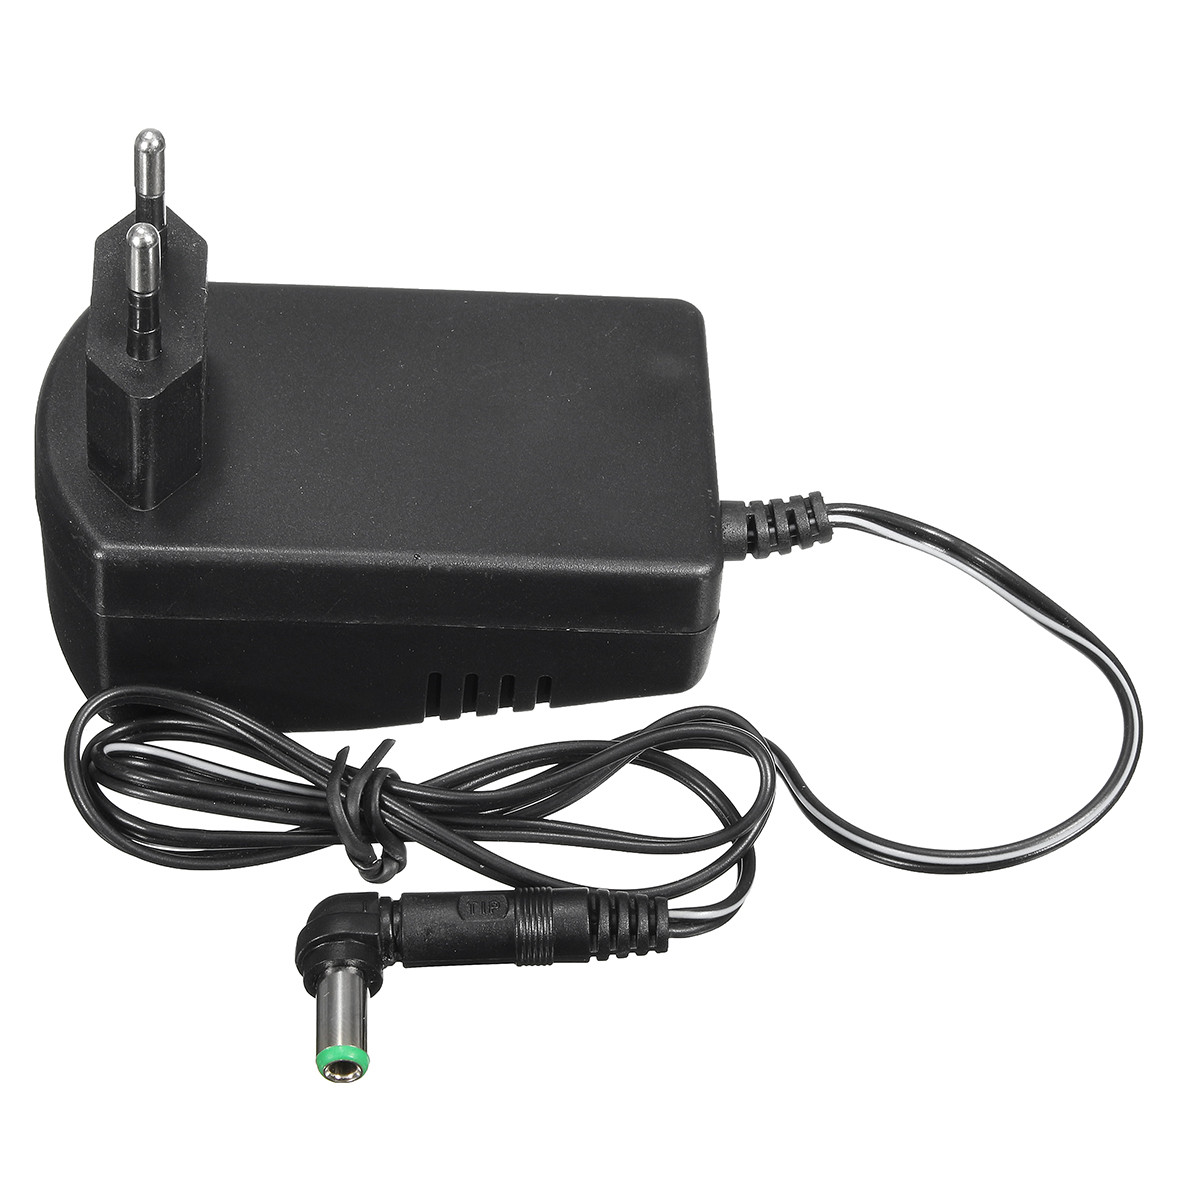 2.5A 30W 6-in-1 Universal AC DC Adapter Converter 3V 4.5V 6V 7.5V 9V 12V Power Charger Supply